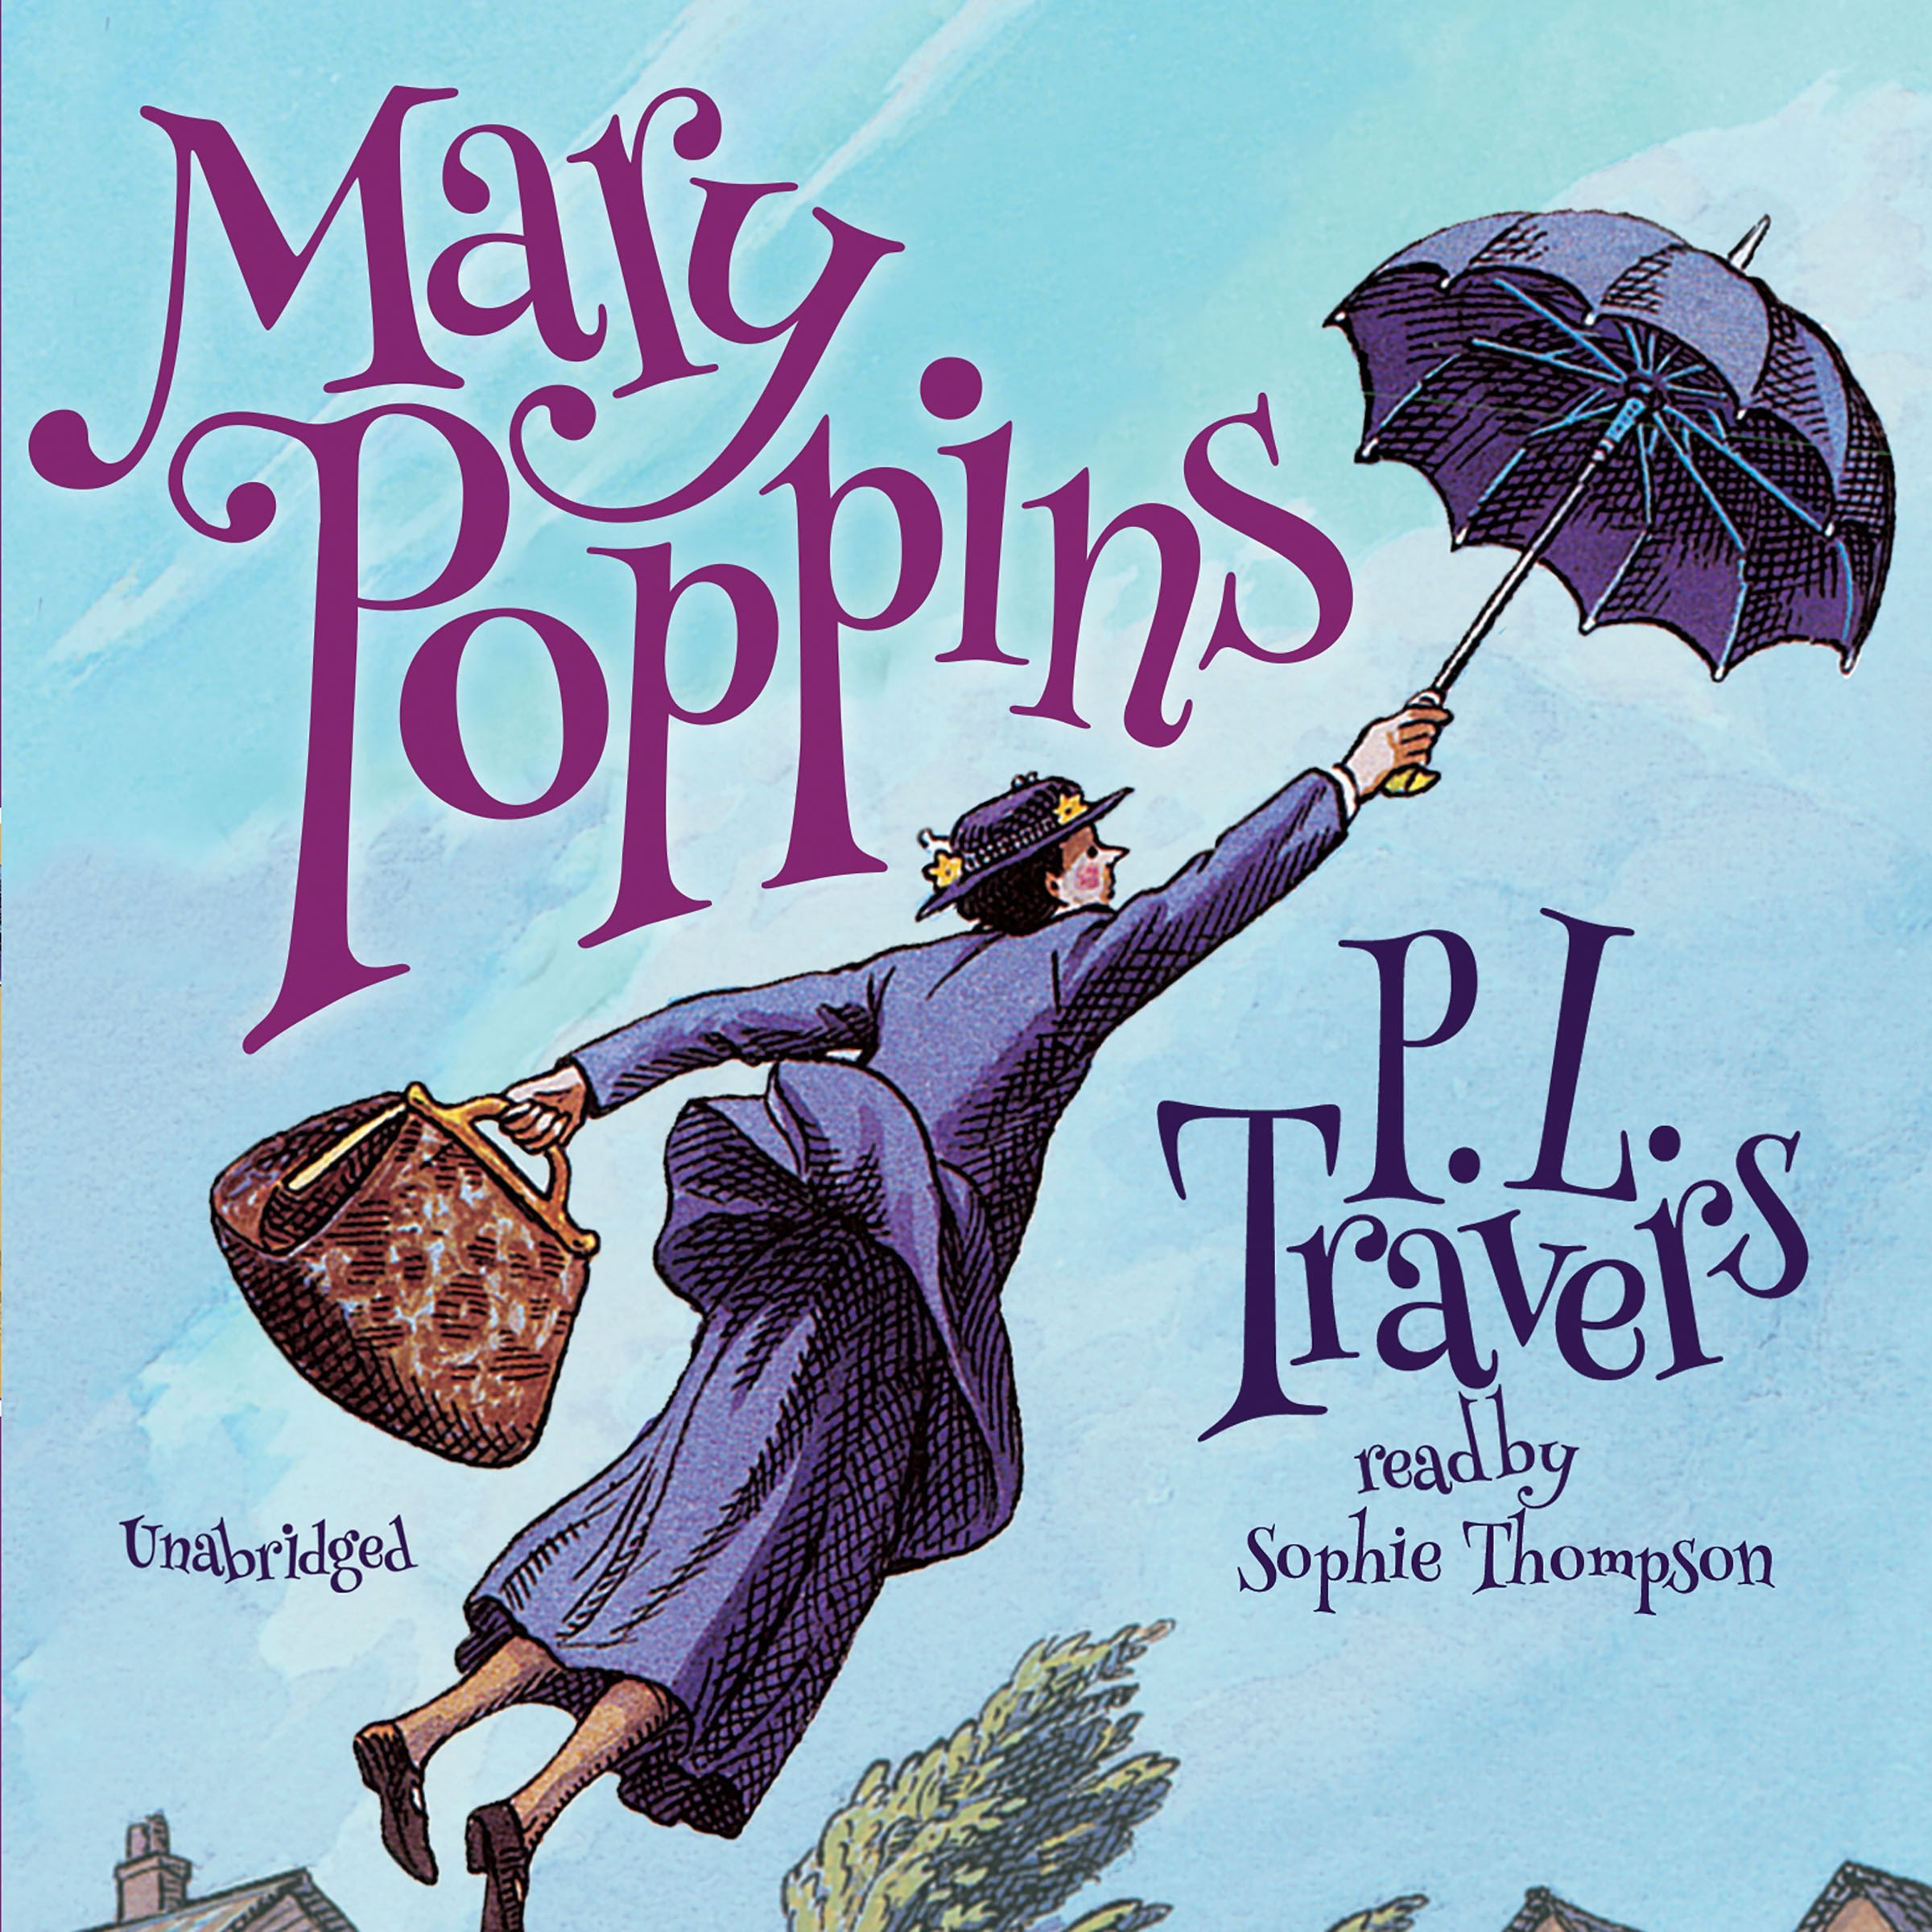 Mary Poppins - Books 1 - 6 - P L Travers